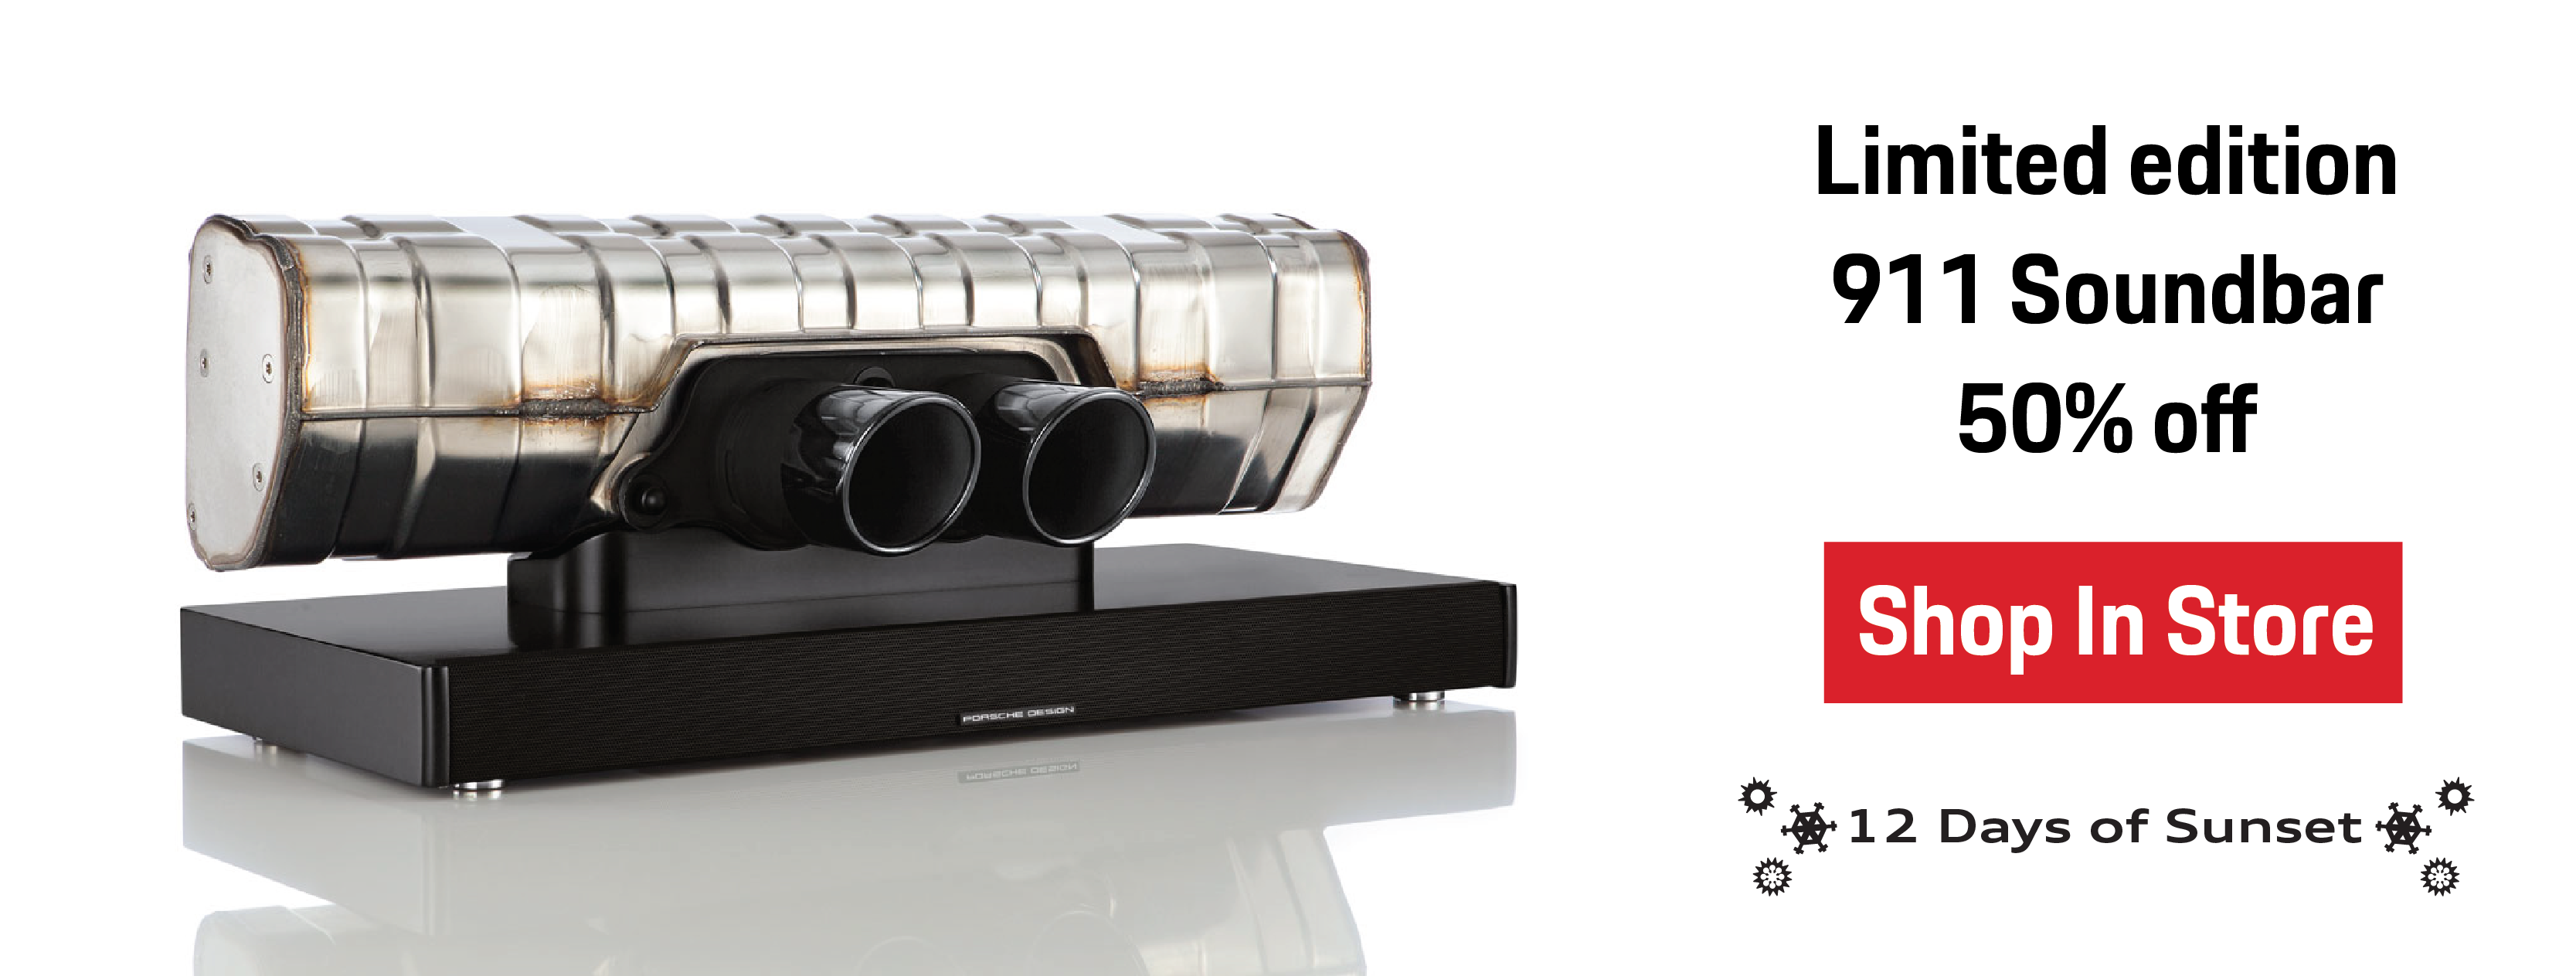 12 Days of Sunset | Day 2 | Limited Edition 911 Soundbar 50% Off | Shop In Store